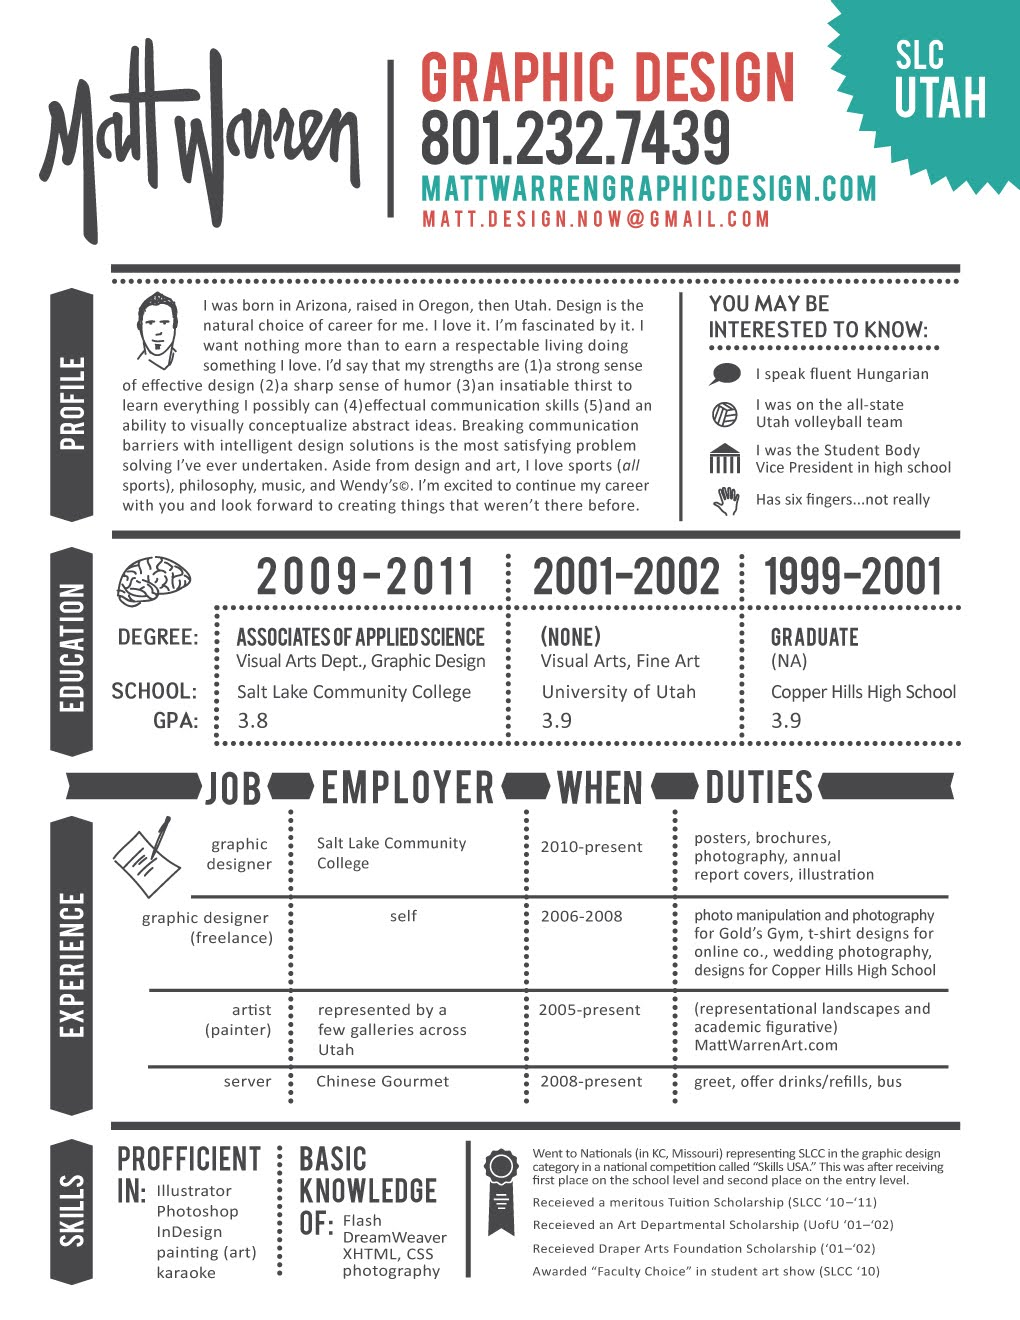 1000 images about biodata for marriage samples on pinterest - Art Resume Art Director Resume Format Teacher Samples Visualcv